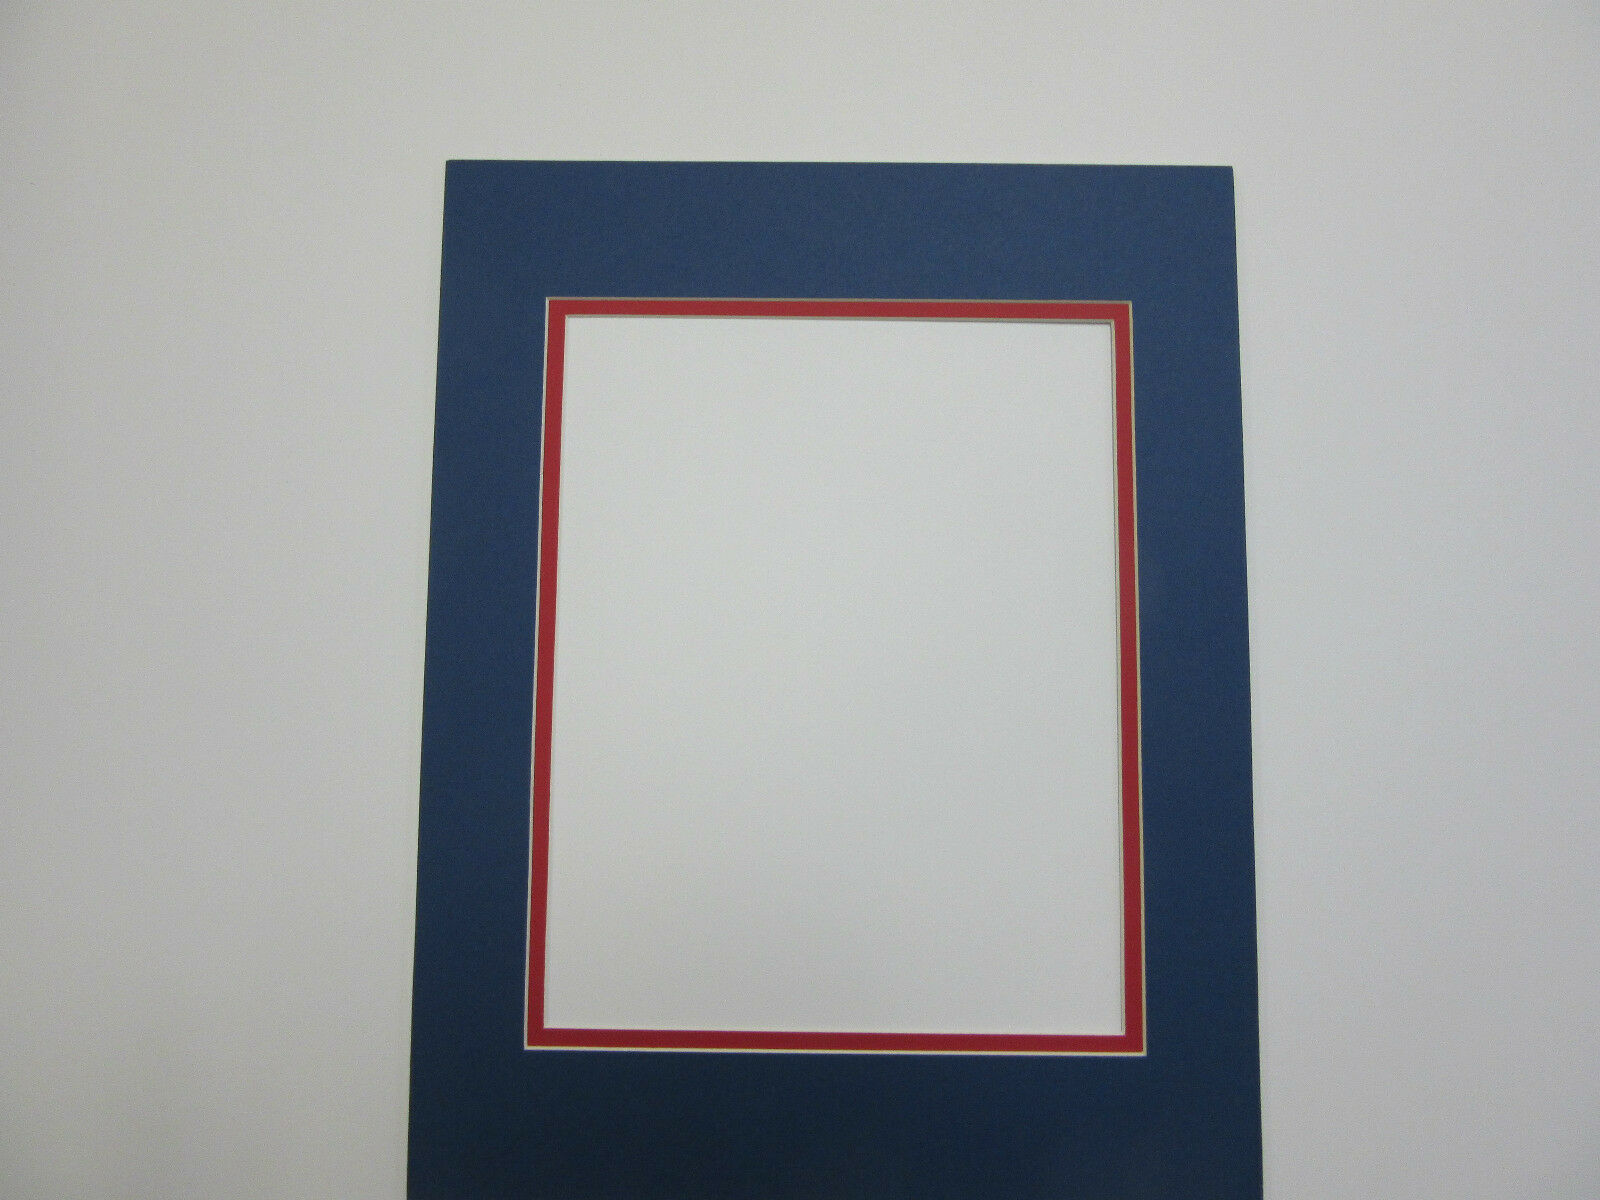 Picture frame double mat 11x14 for 8x10 photoblue with red liner brand new lowest price jeuxipadfo Gallery